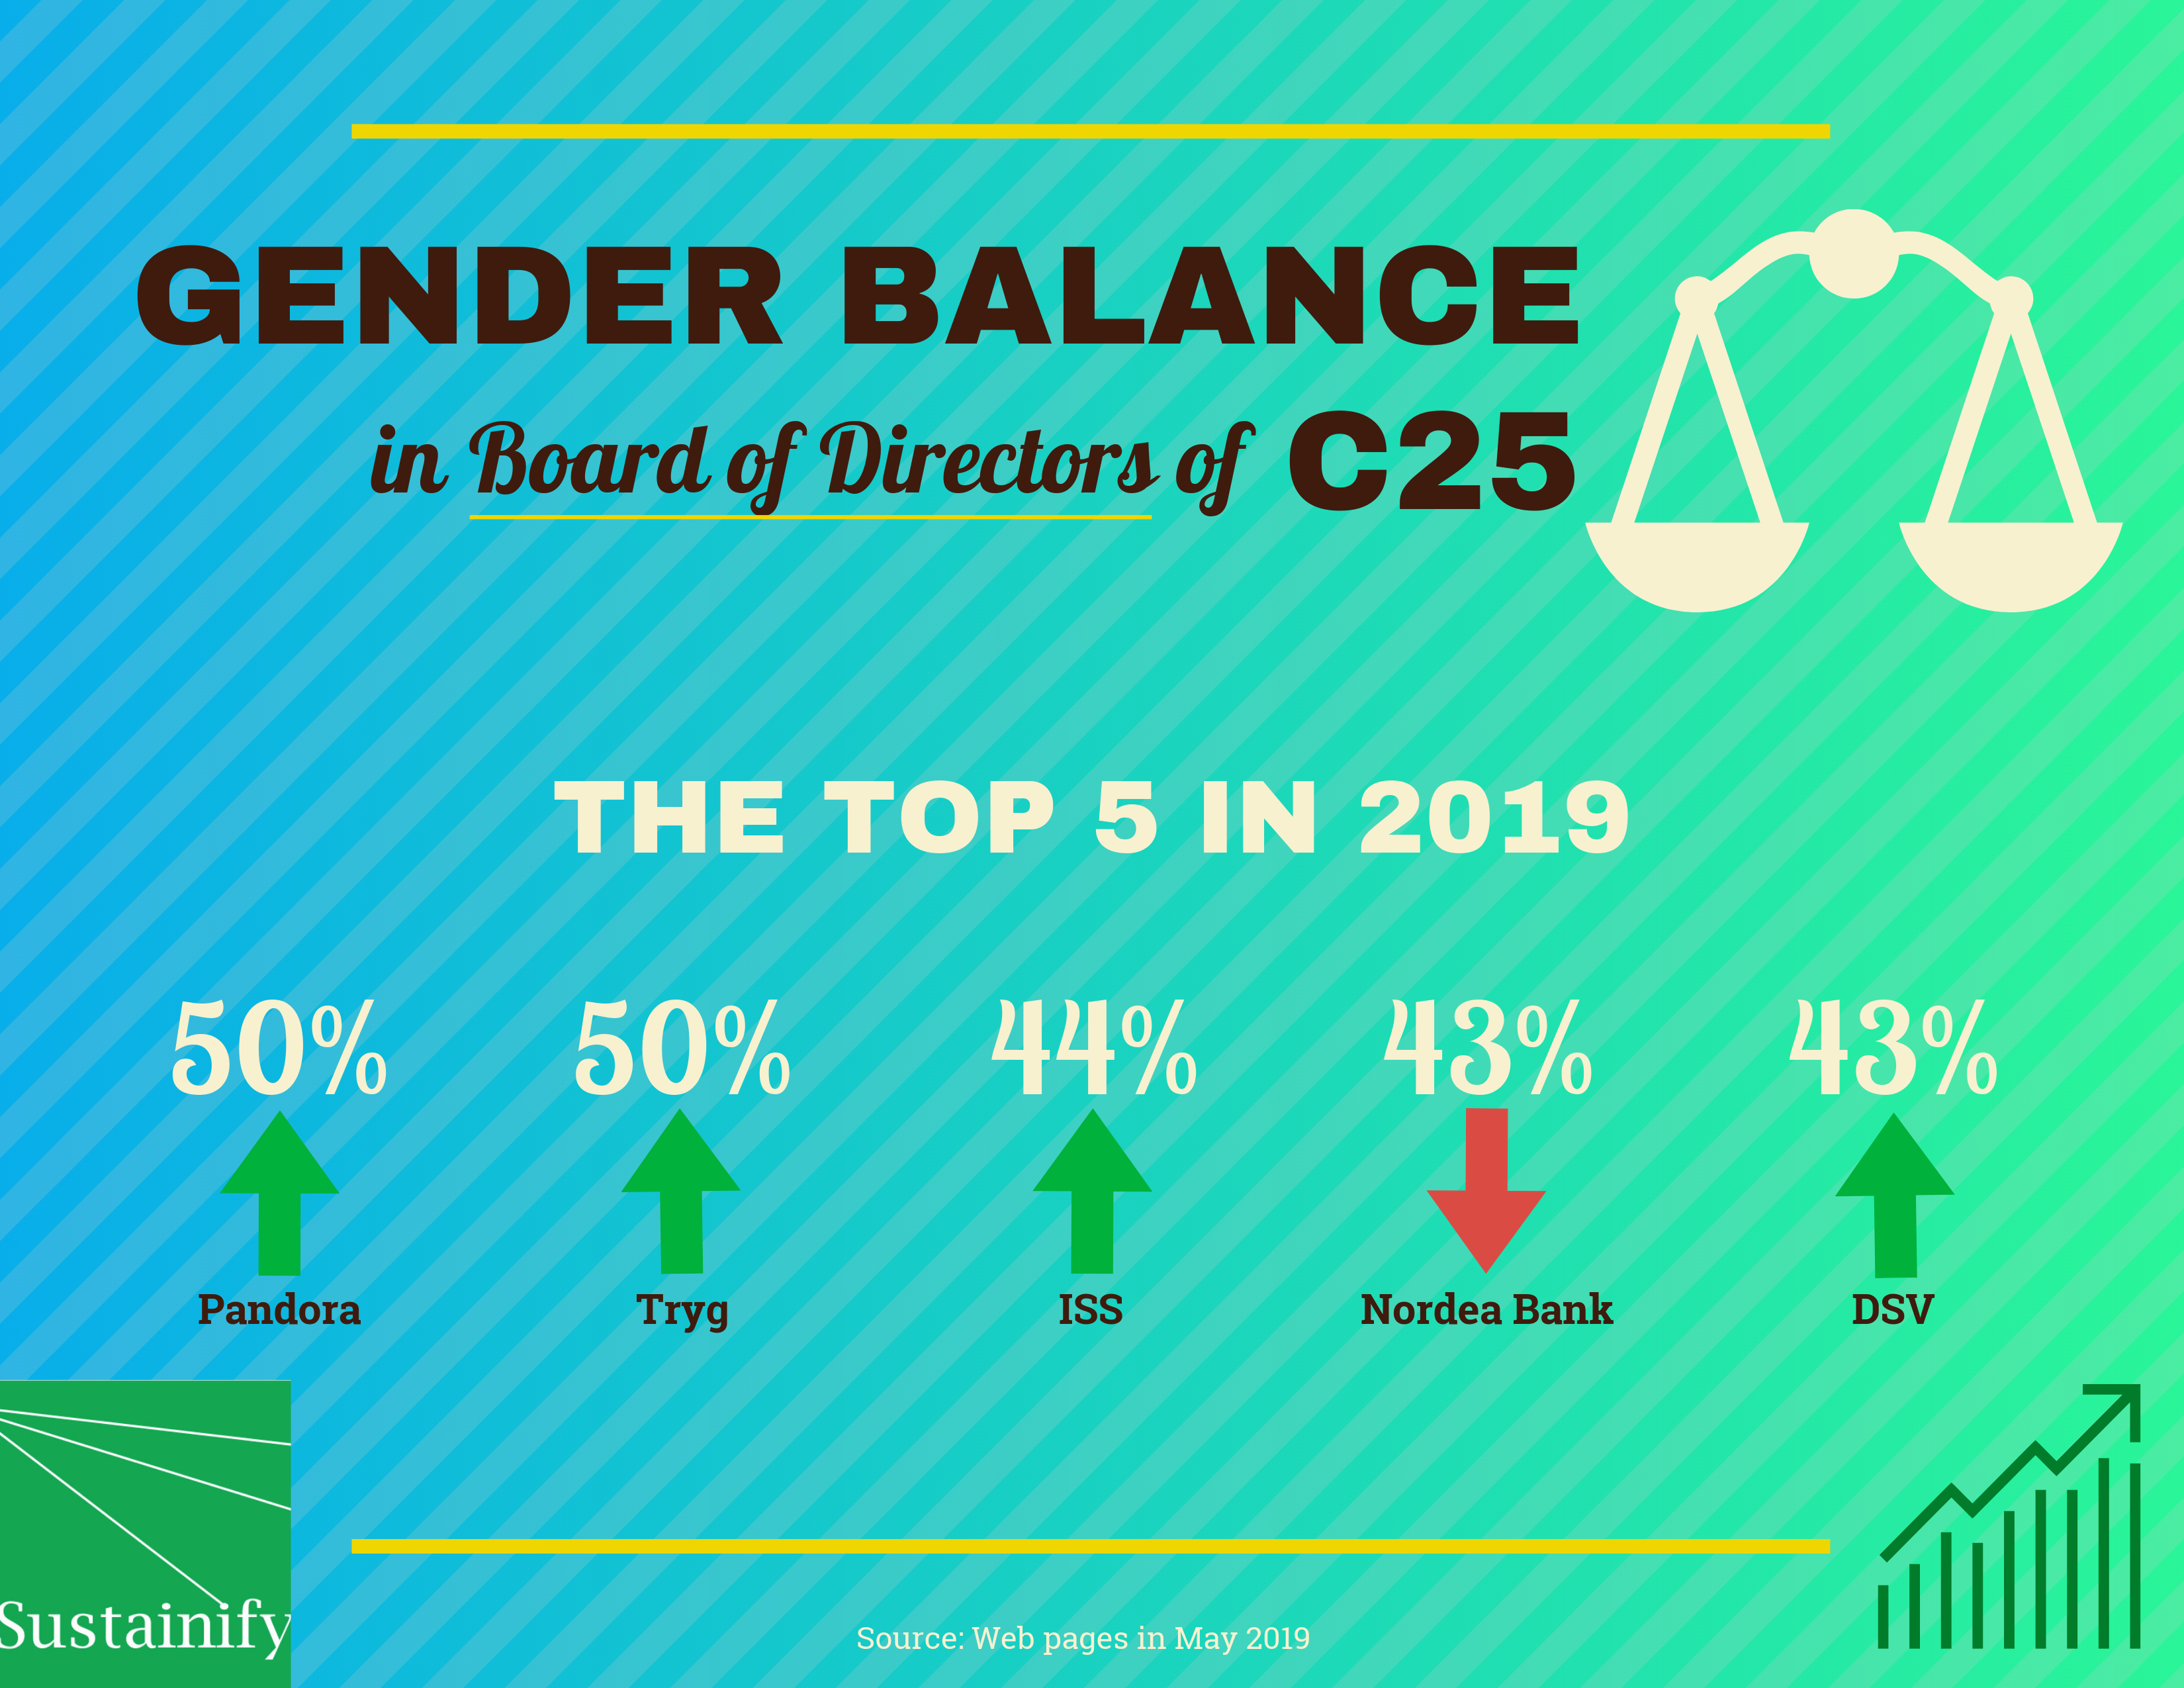 Sustainify_CSR rating of listed companies gender balance in executive management in C25 top 5